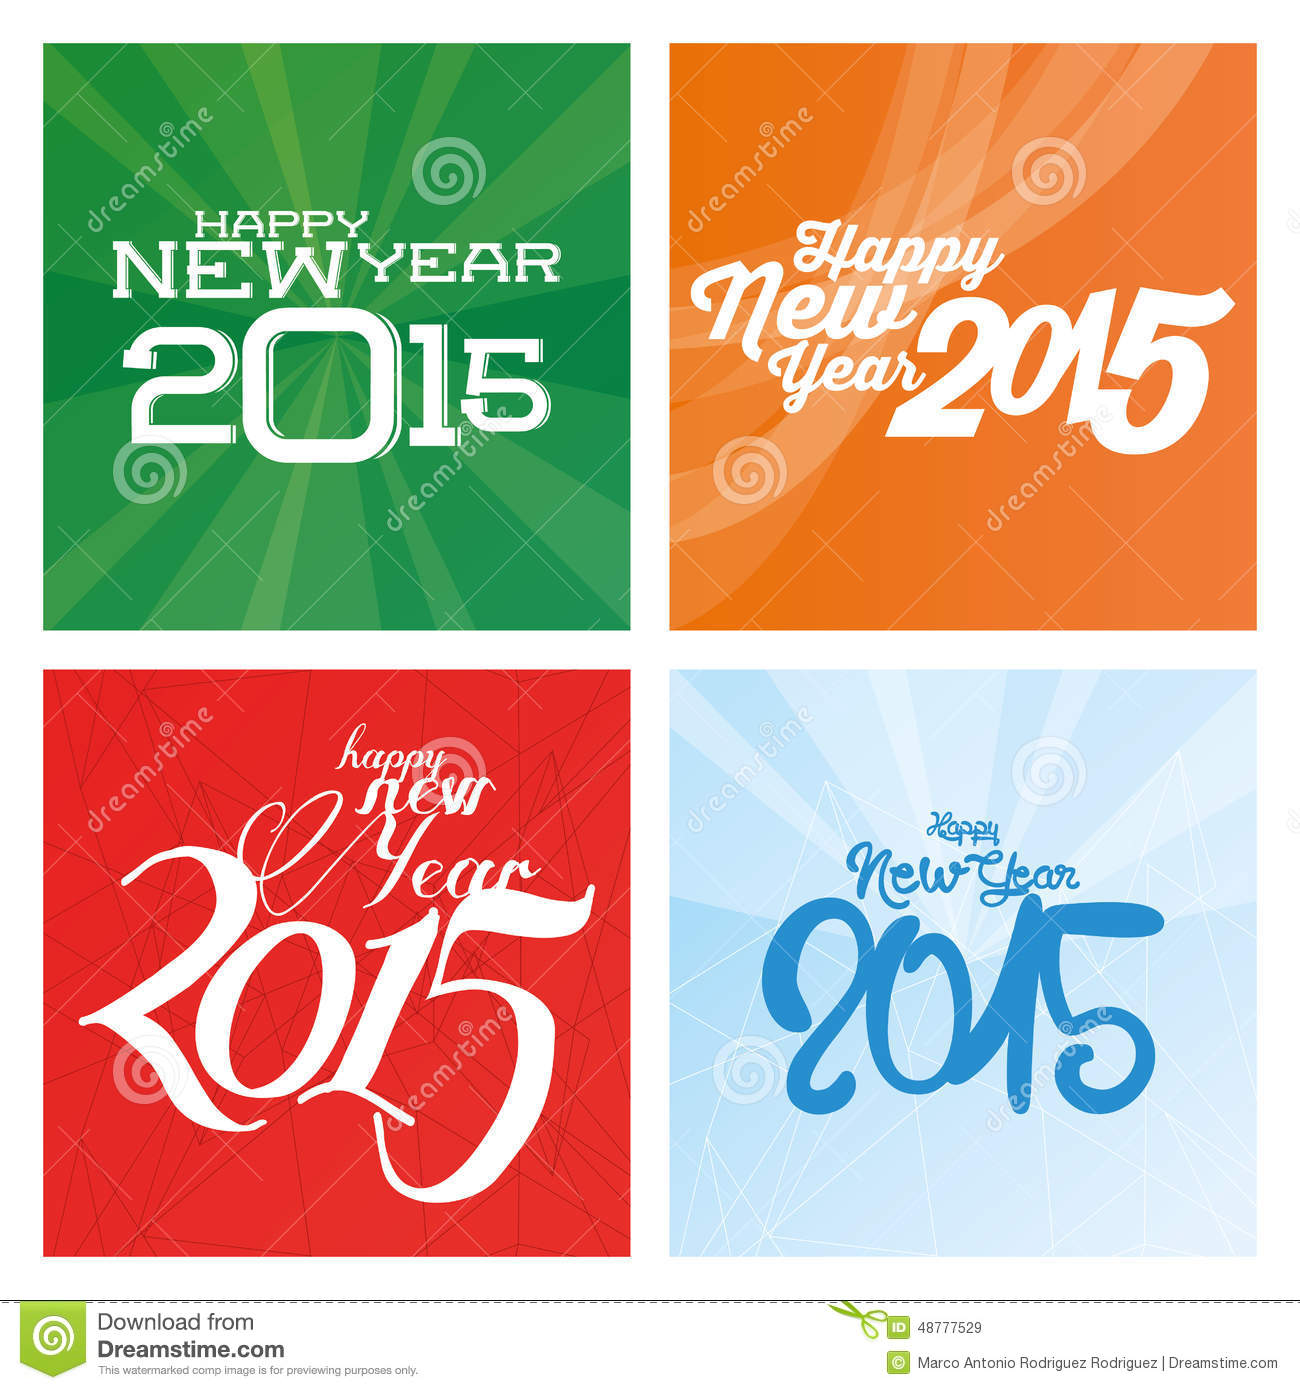 a set of different colored backgrounds with happy new year messages